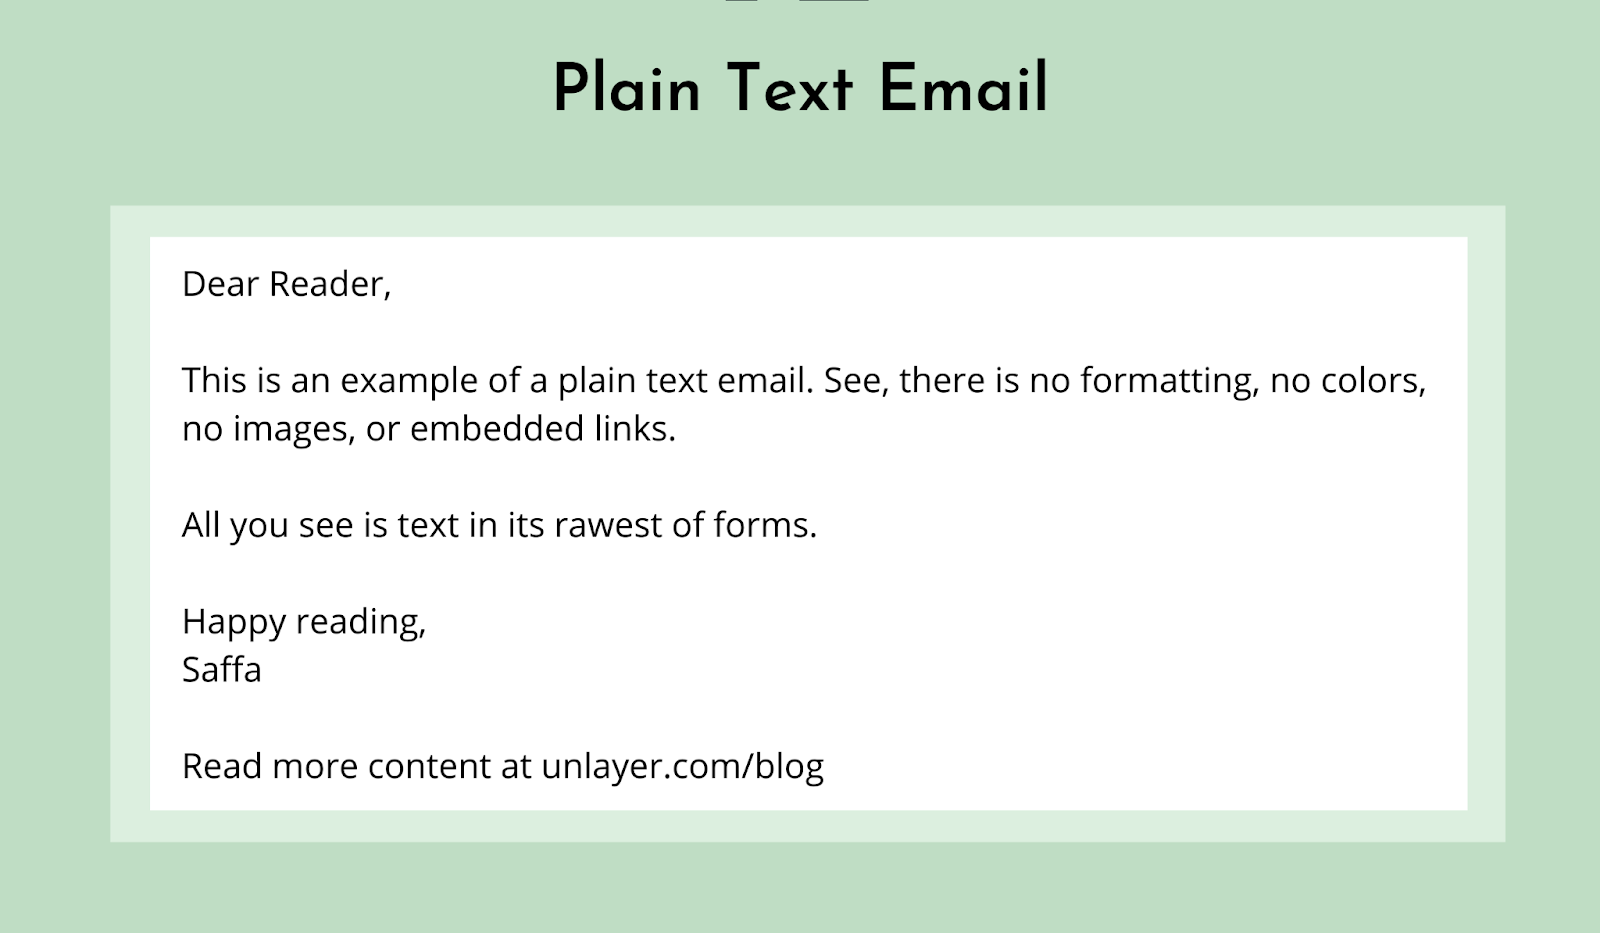 What does a Plain Text Email look like